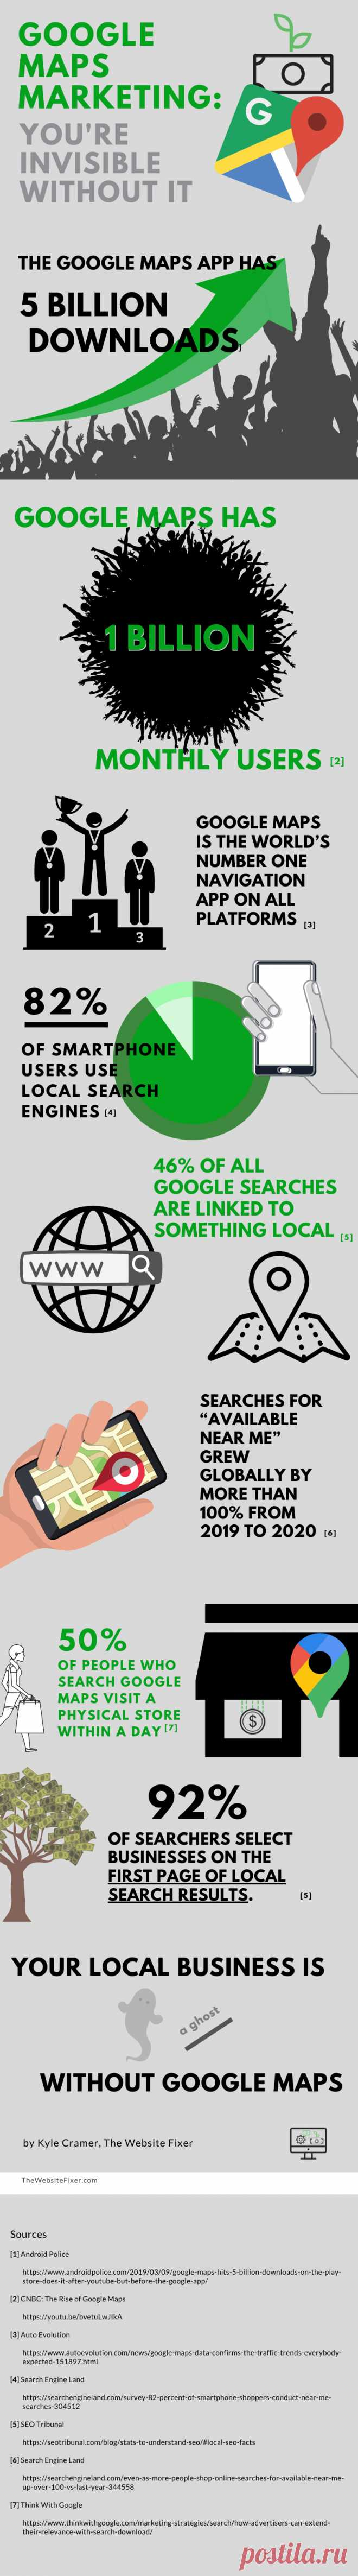 8 Google Maps Stats Every Business Owner & Marketer Should Know In 2021